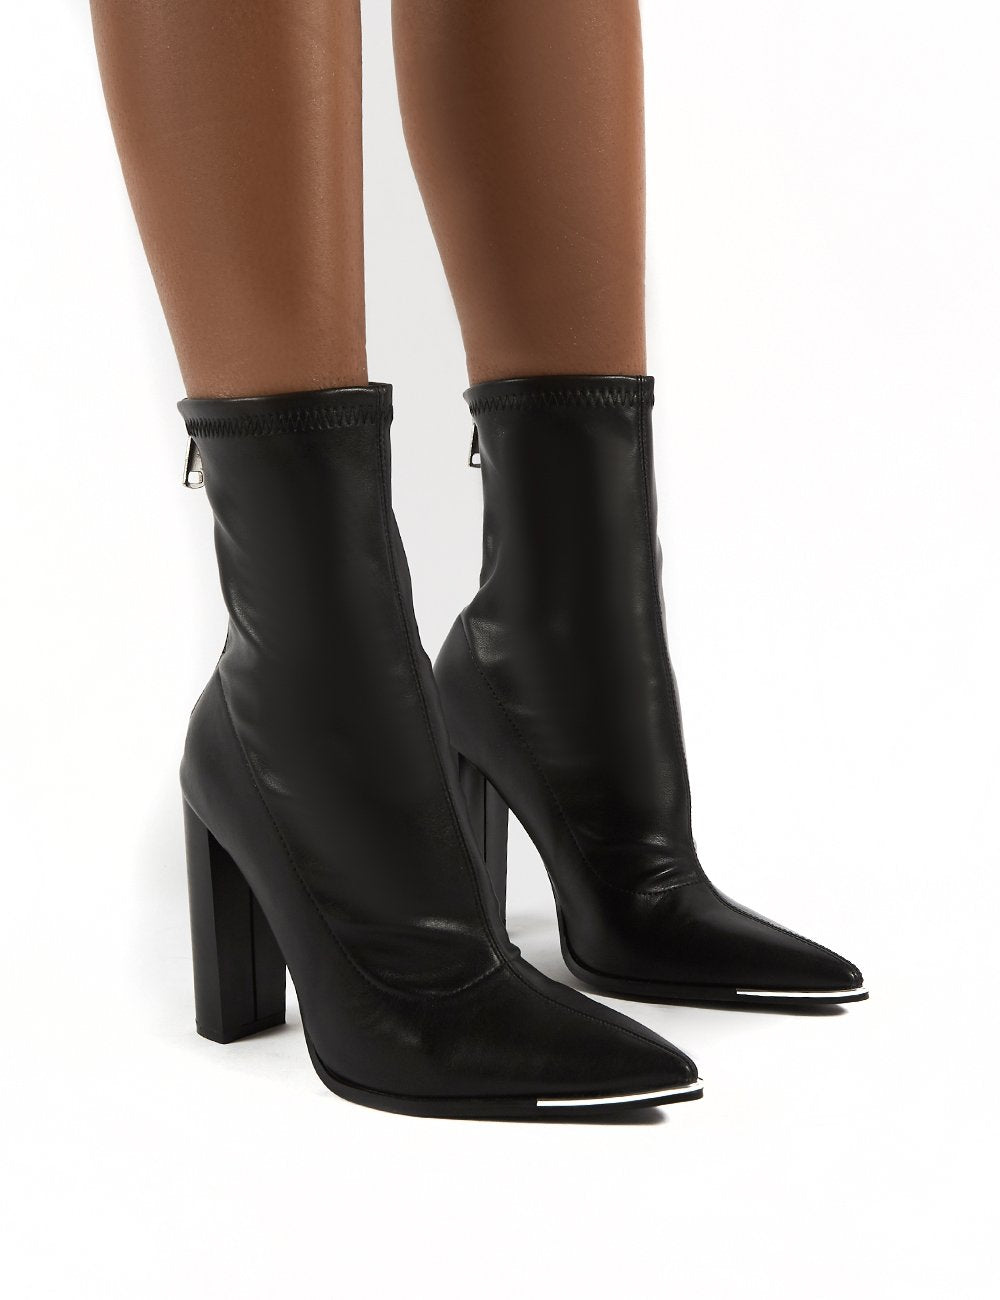 Affection Black Pu Block Heeled Ankle Boots - Us 6